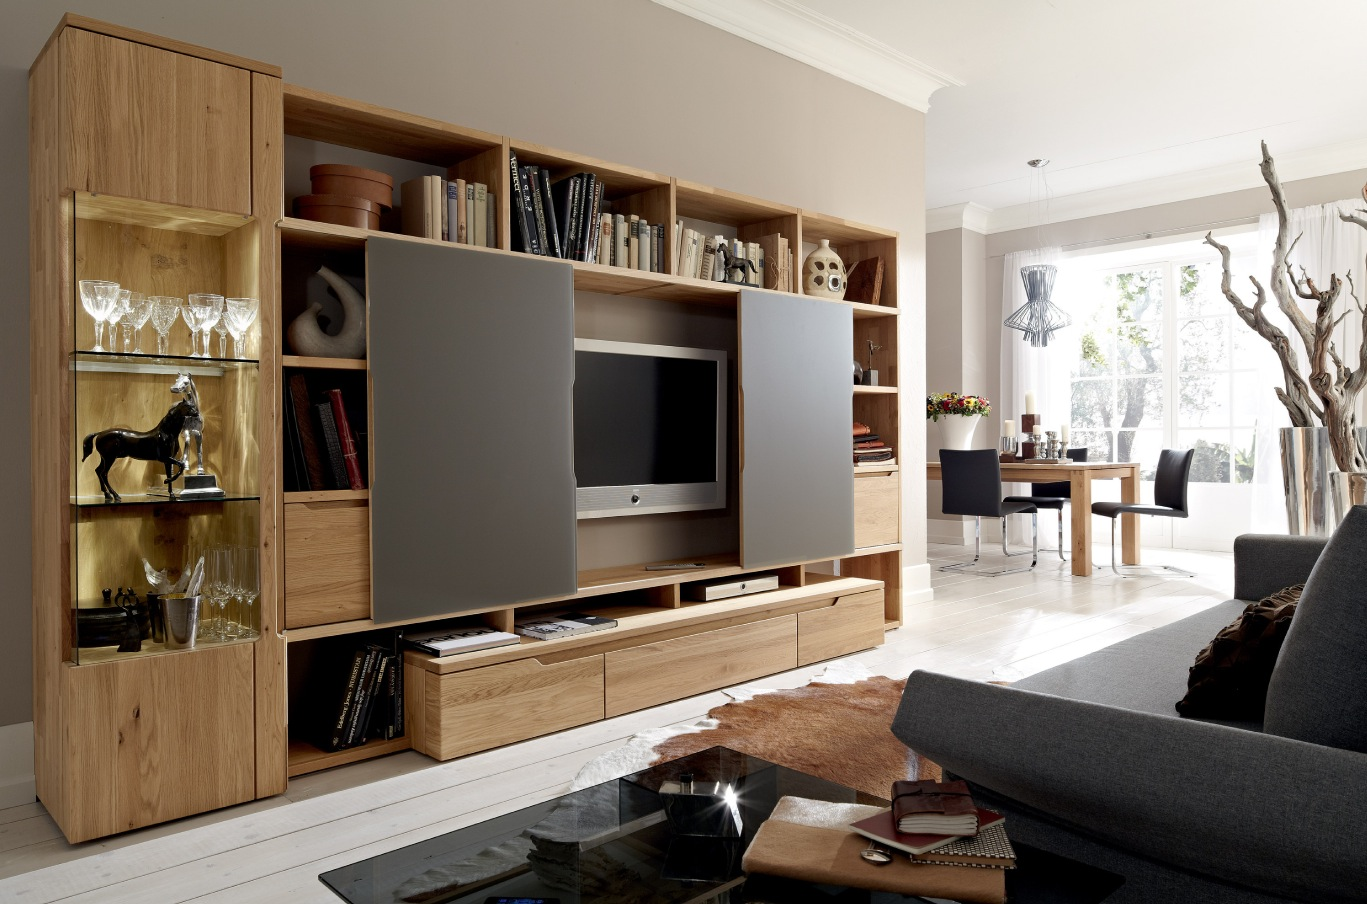 ideas to cover textured ceilings - Wooden Finish Wall Unit binations From Hülsta